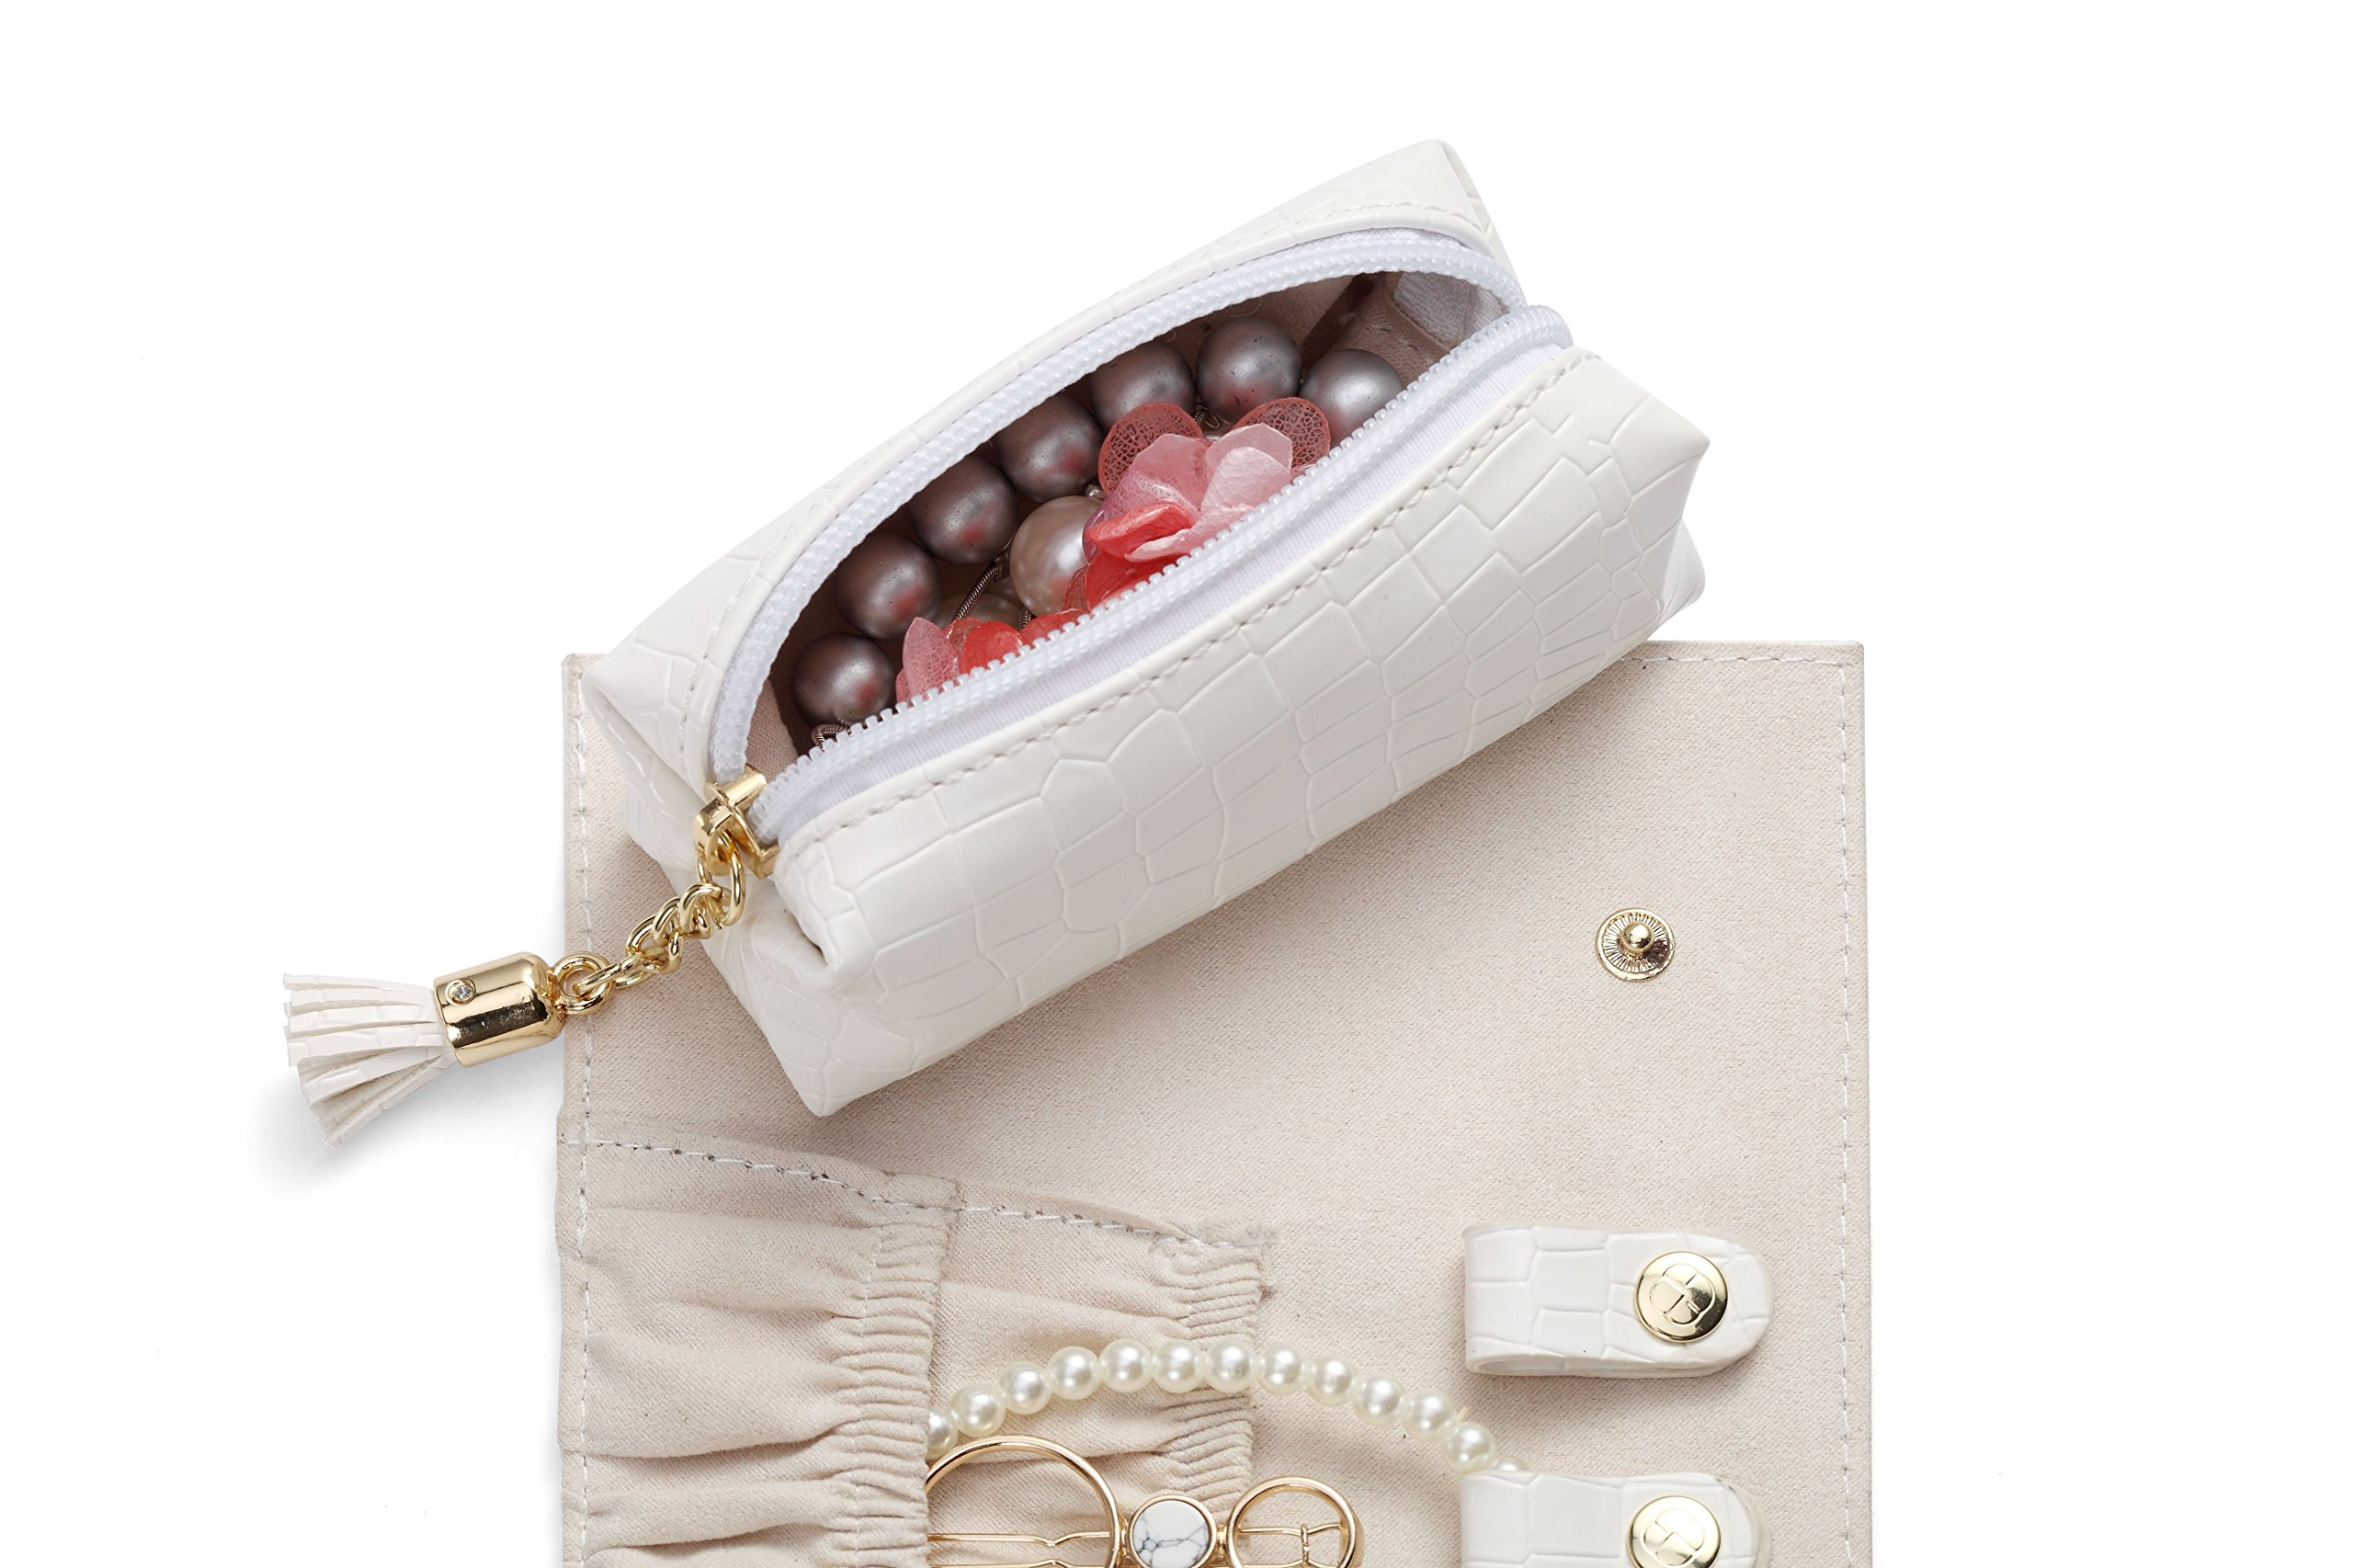 Vlando Rollie Portable Jewelry Roll, lipstick/Daily Jewelries Storage Case- (White) by Vlando (Image #4)